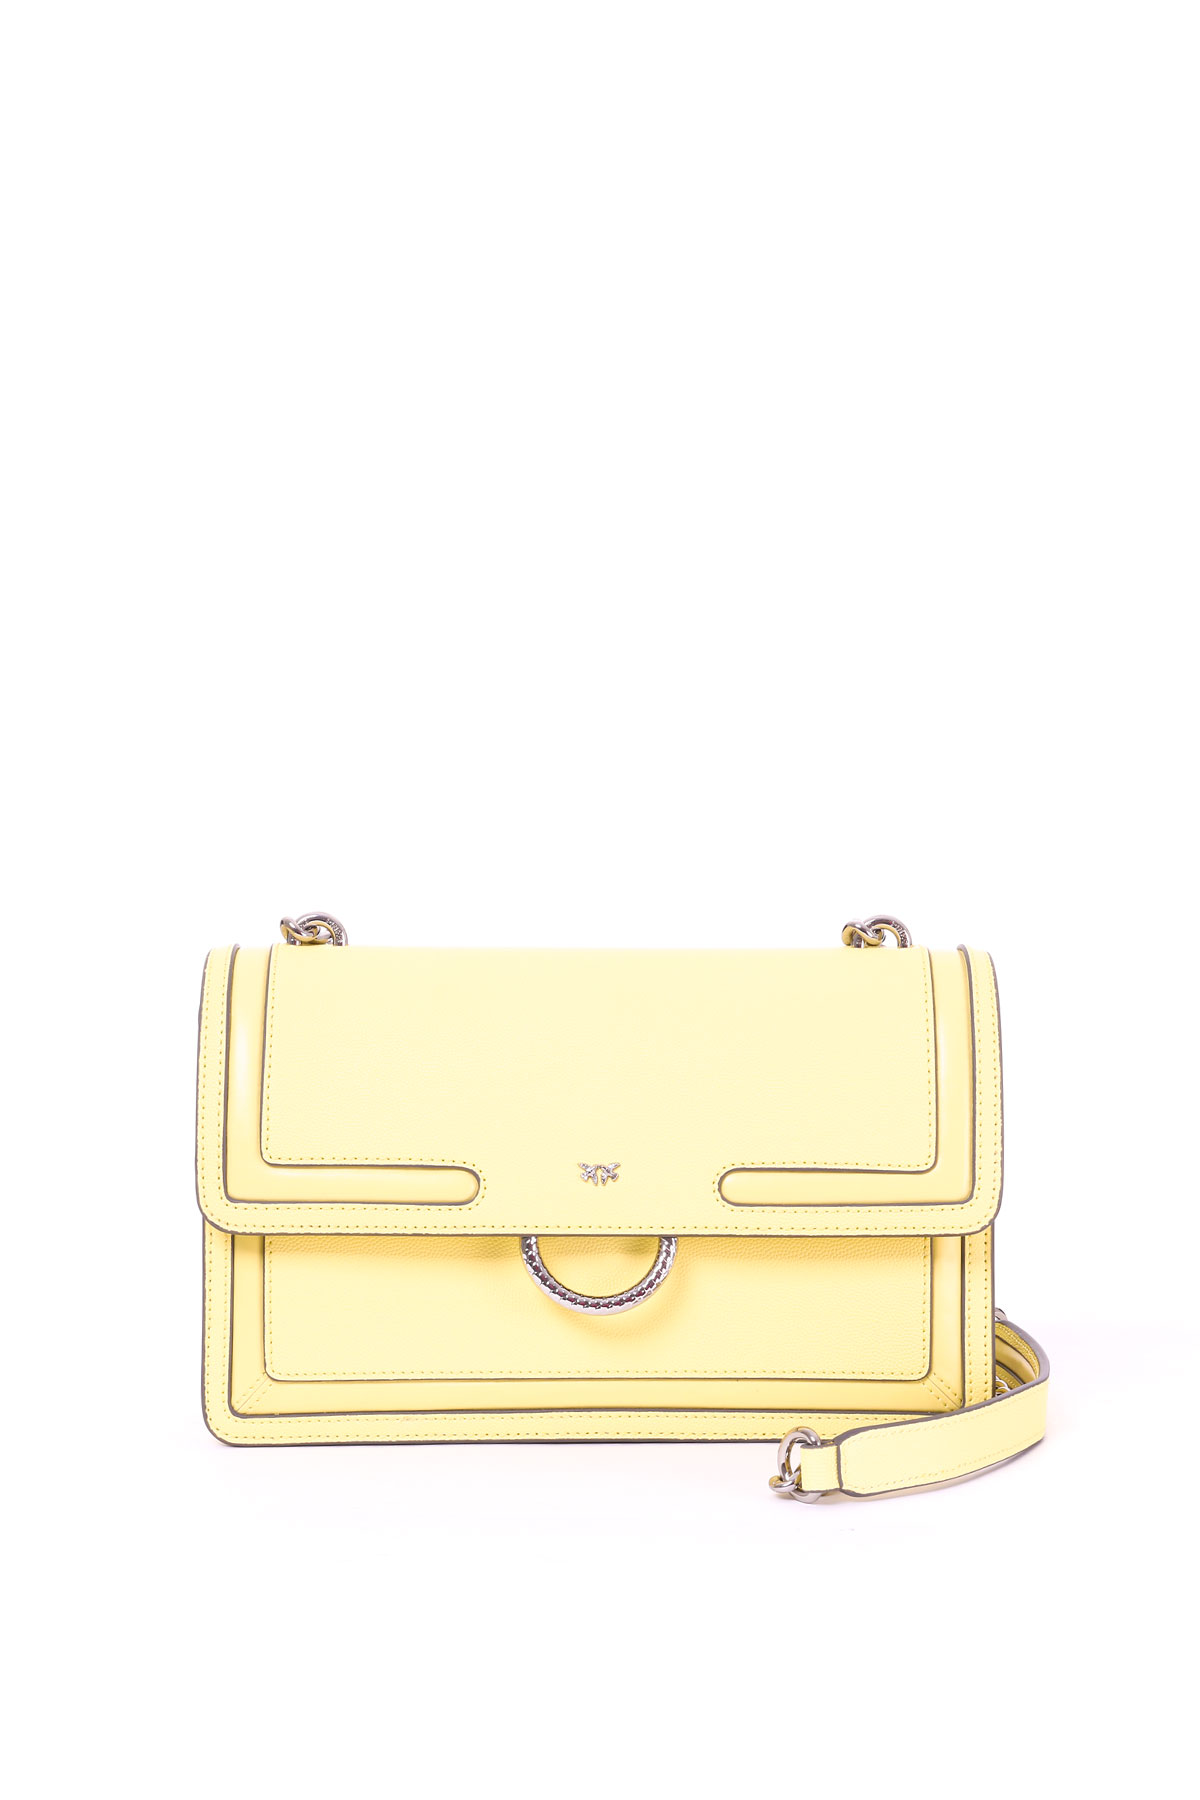 e558d7d3eca YELLOW LOVE BAG NEW IN CAVIAR LEATHER WITH INLAYS PINKO   Bags    LOVENEW1P21A6Y5F4H01